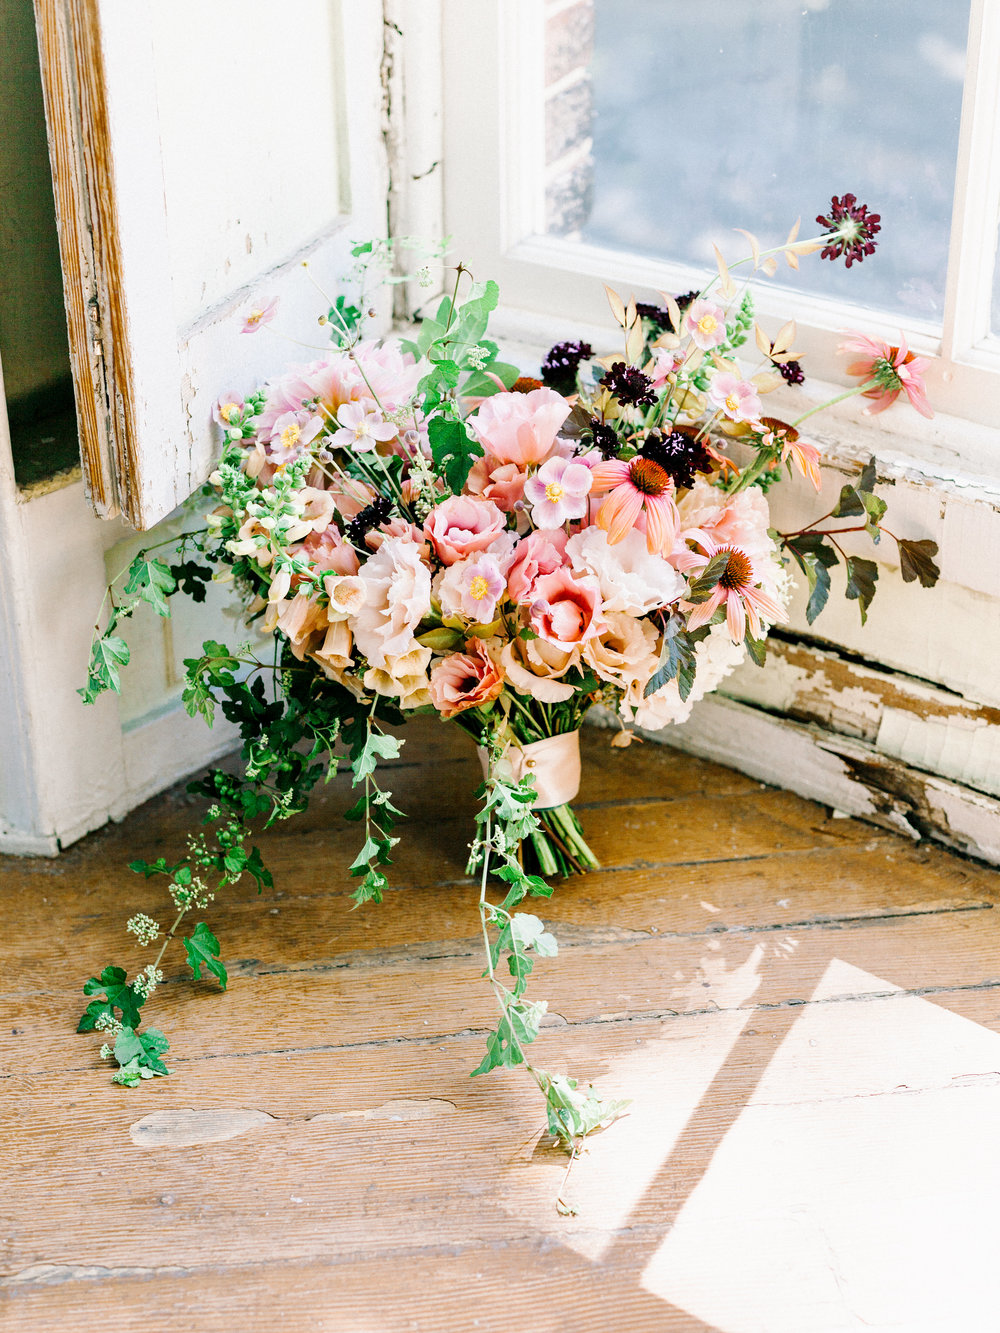 The most beautiful bouquet captures a wild and romantic spirit with whimsical elements from this elopement wedding inspiration shoot at the Woodlands Mansion in Philadelphia.